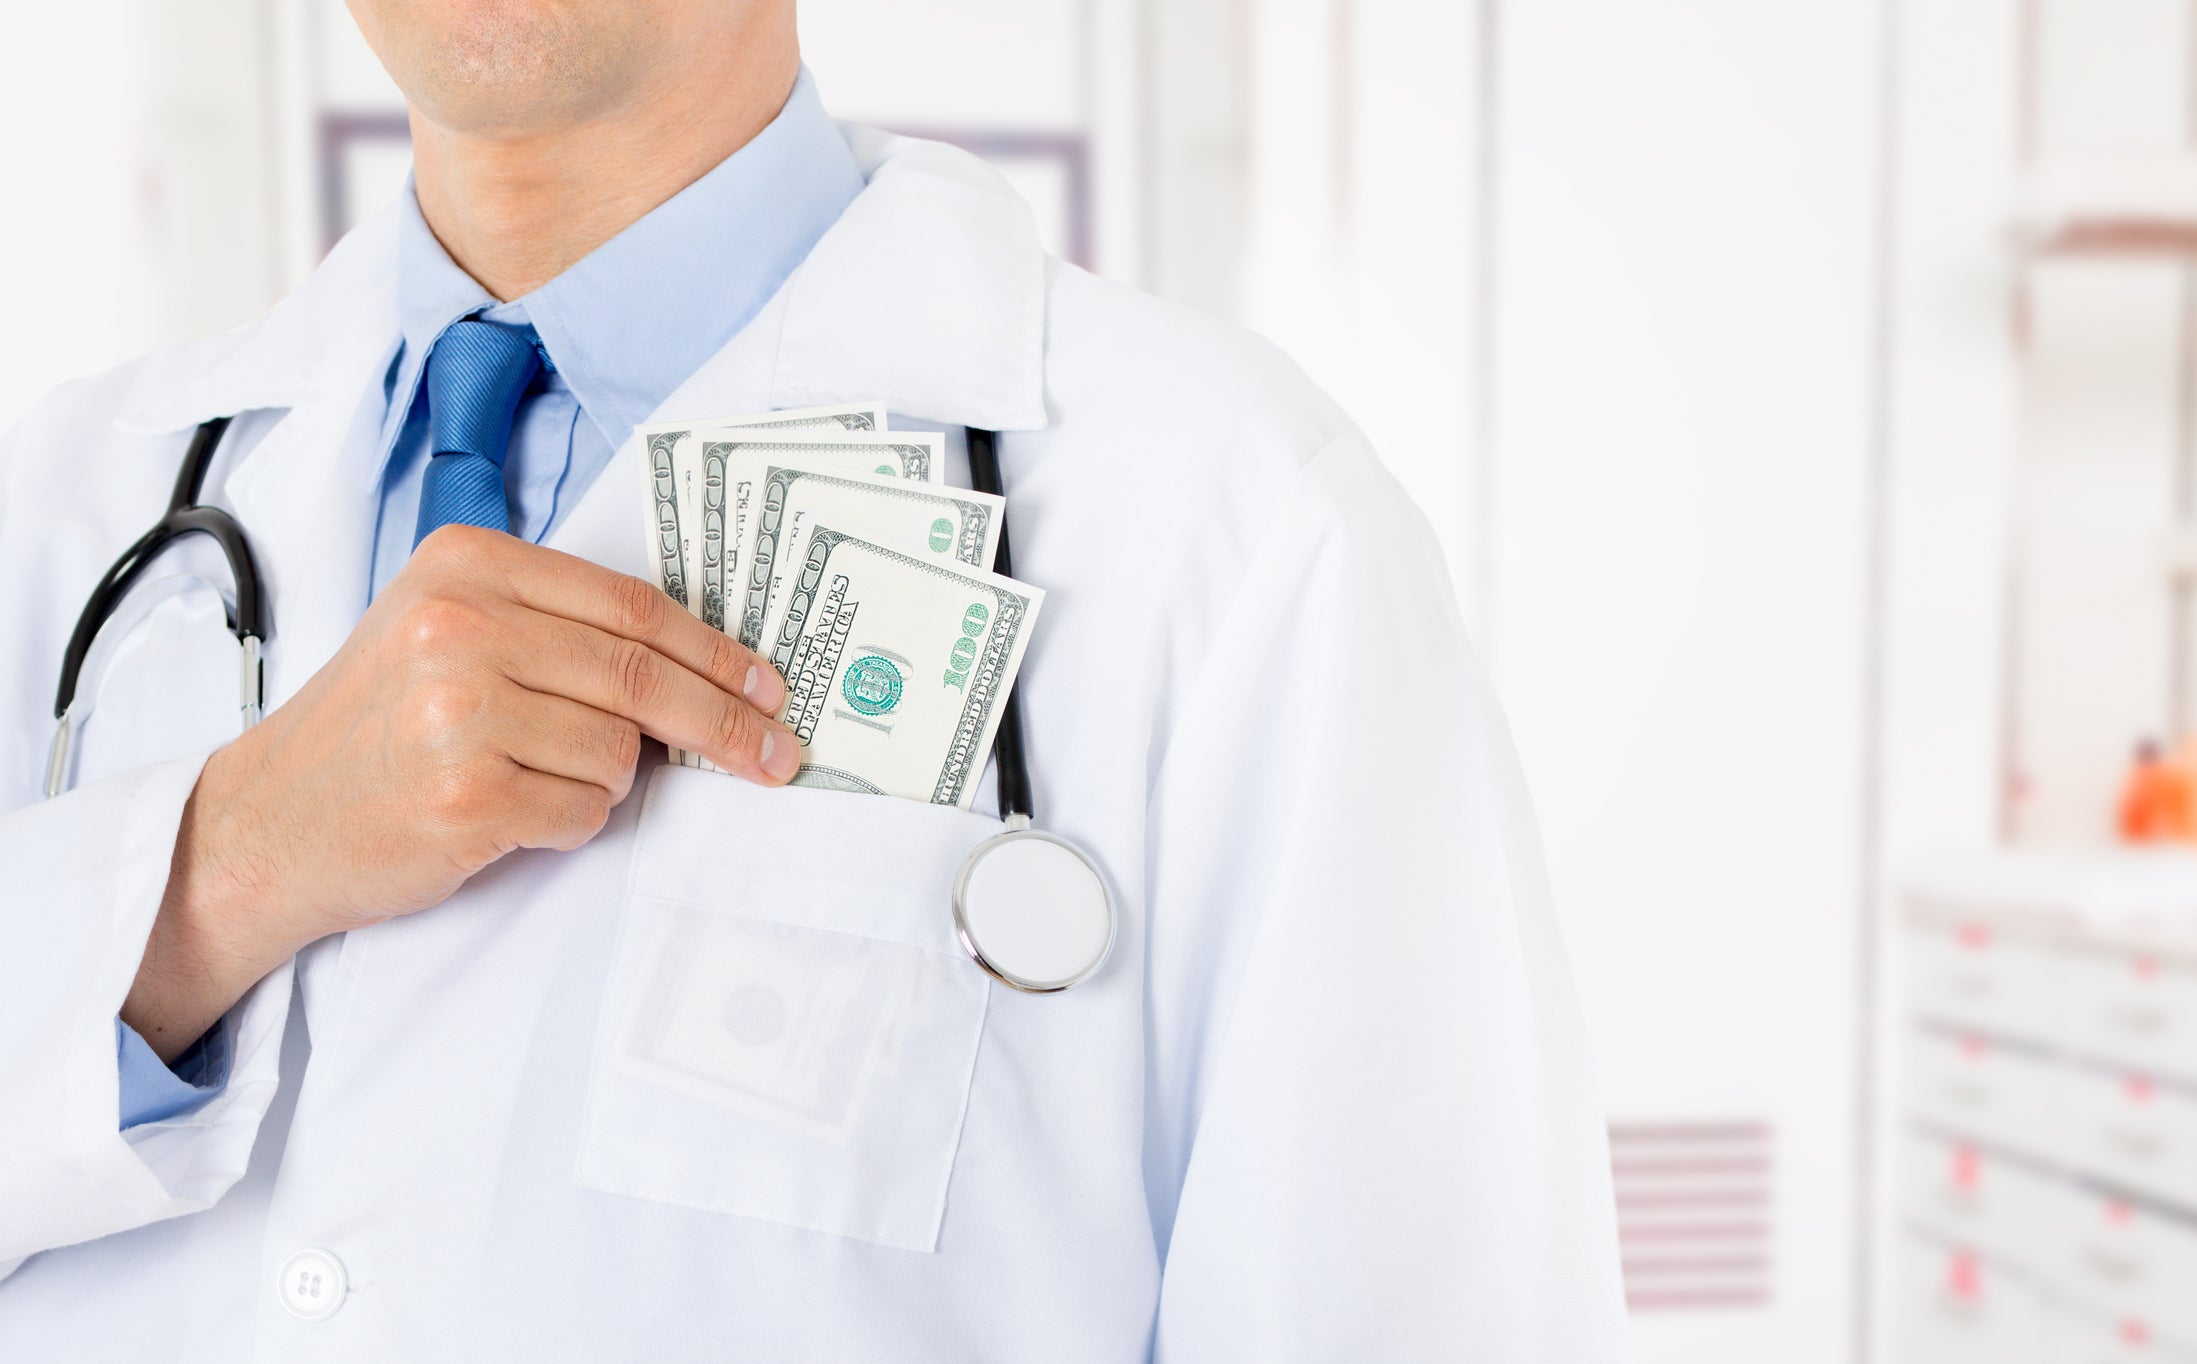 2 Healthcare Stocks That Are Better Value Buys Than Apple